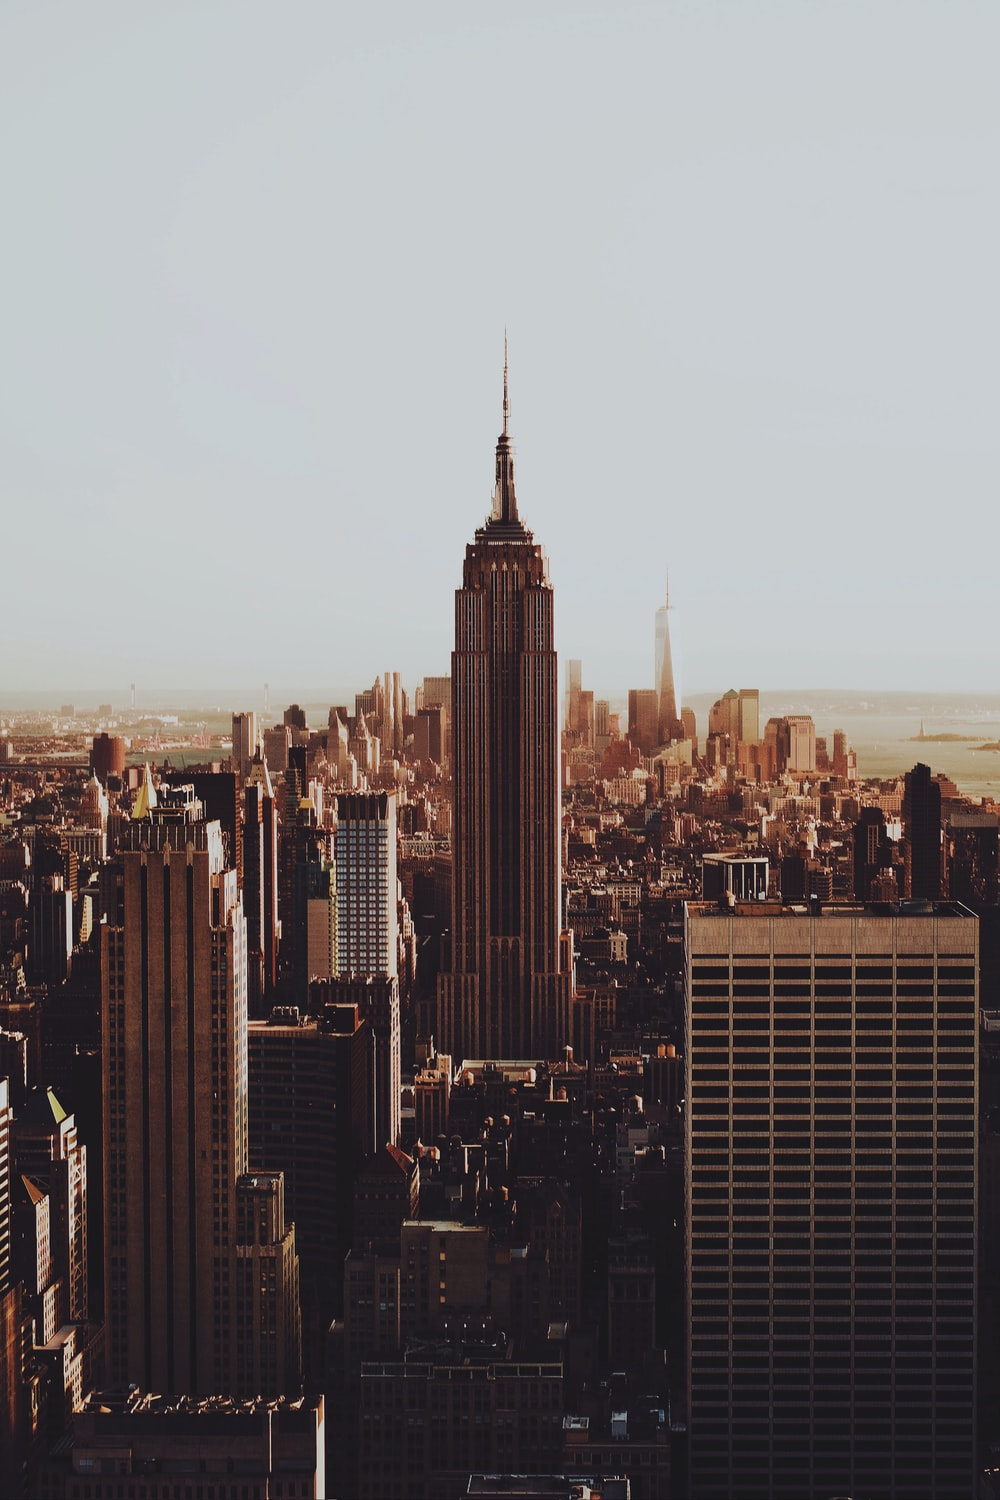 skyline of Empire State Building, New York City in sepia photography